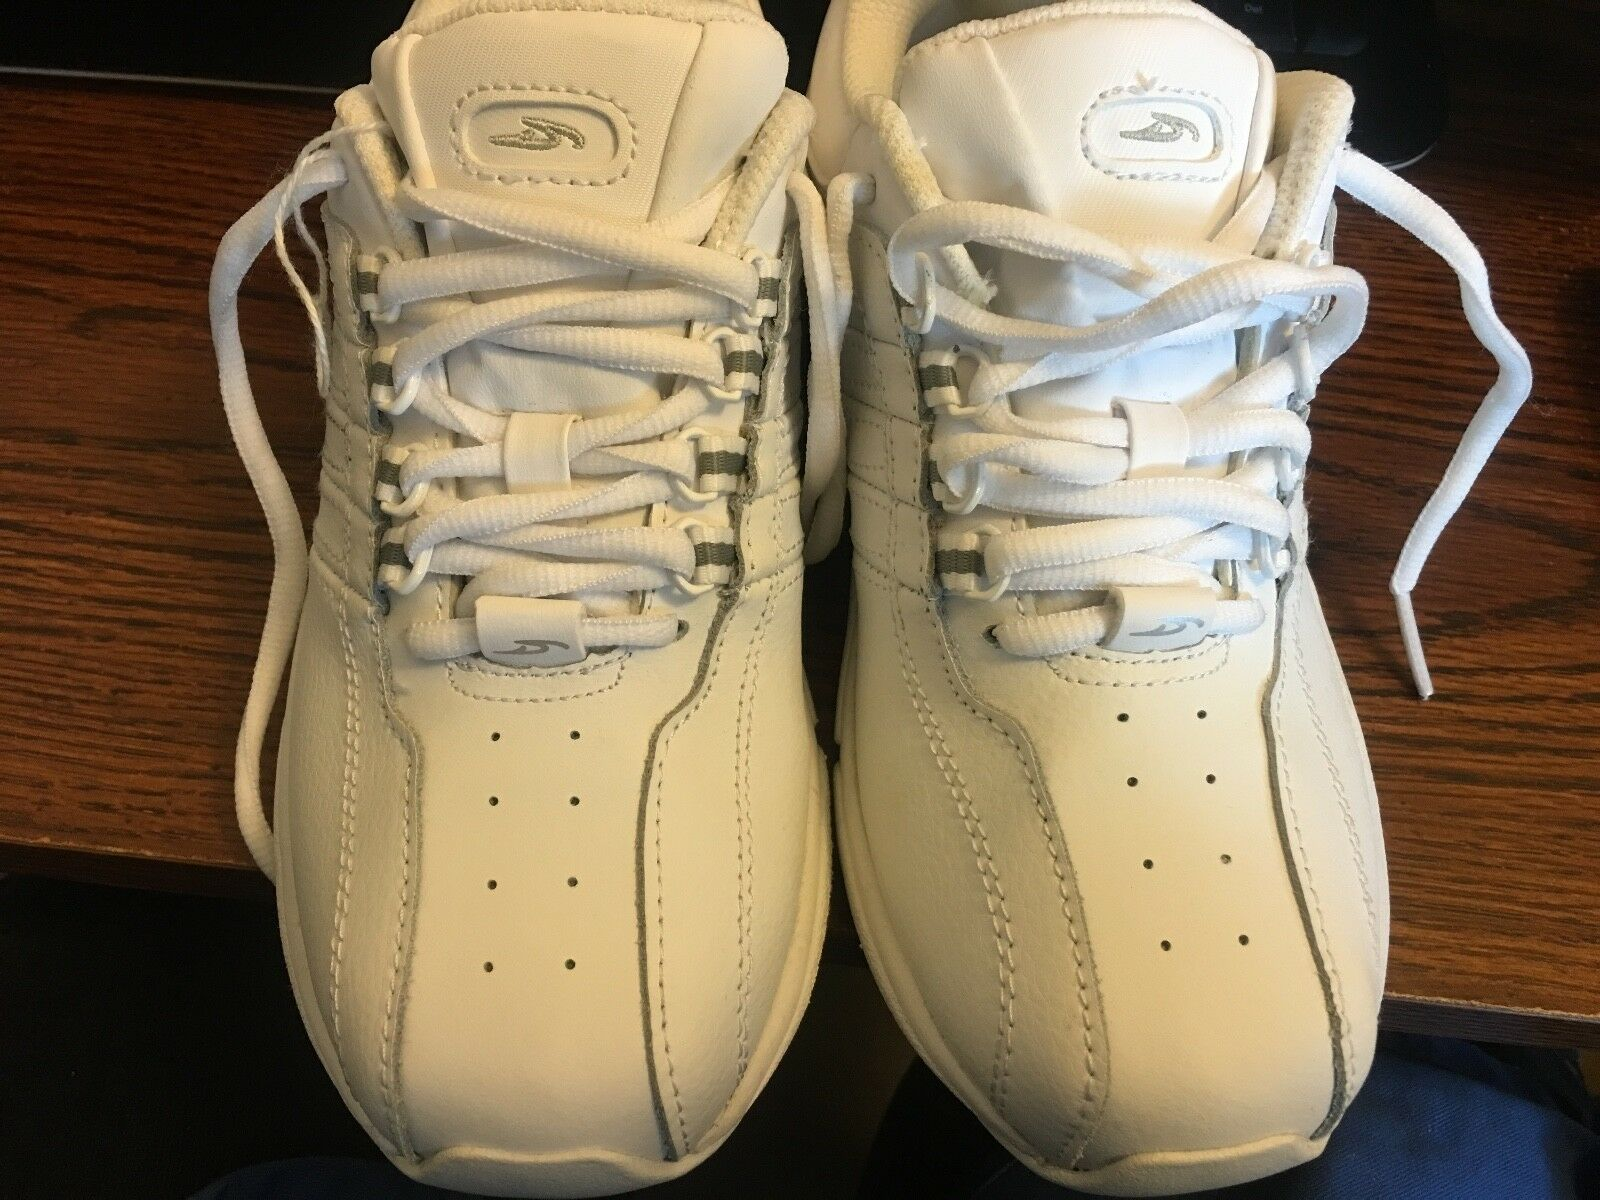 New Dr Scholls Featuring Massaging Gel White Leather Sneakers Tennis shoes sz6M